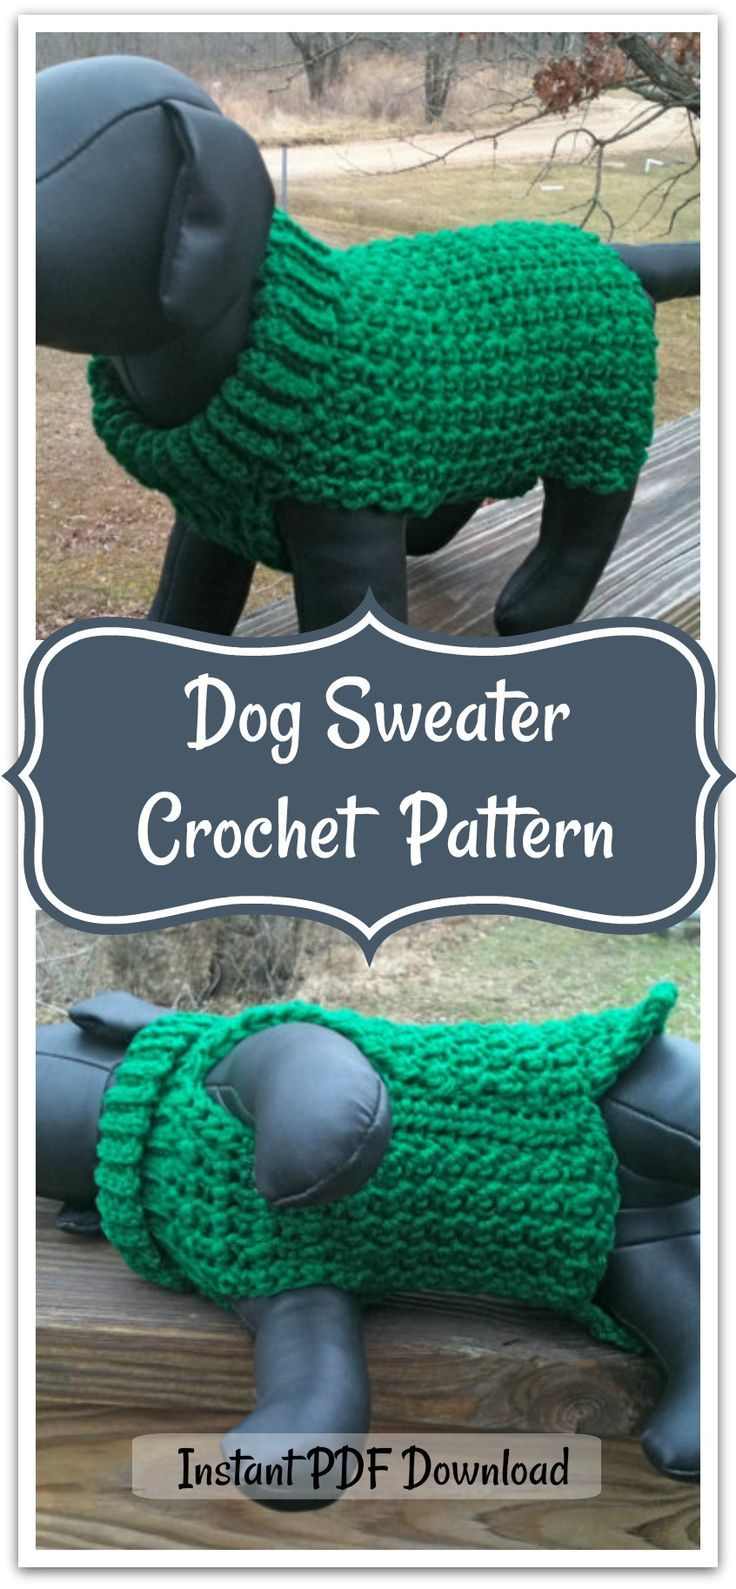 Itus an easy little sweater with pictures and directions that you